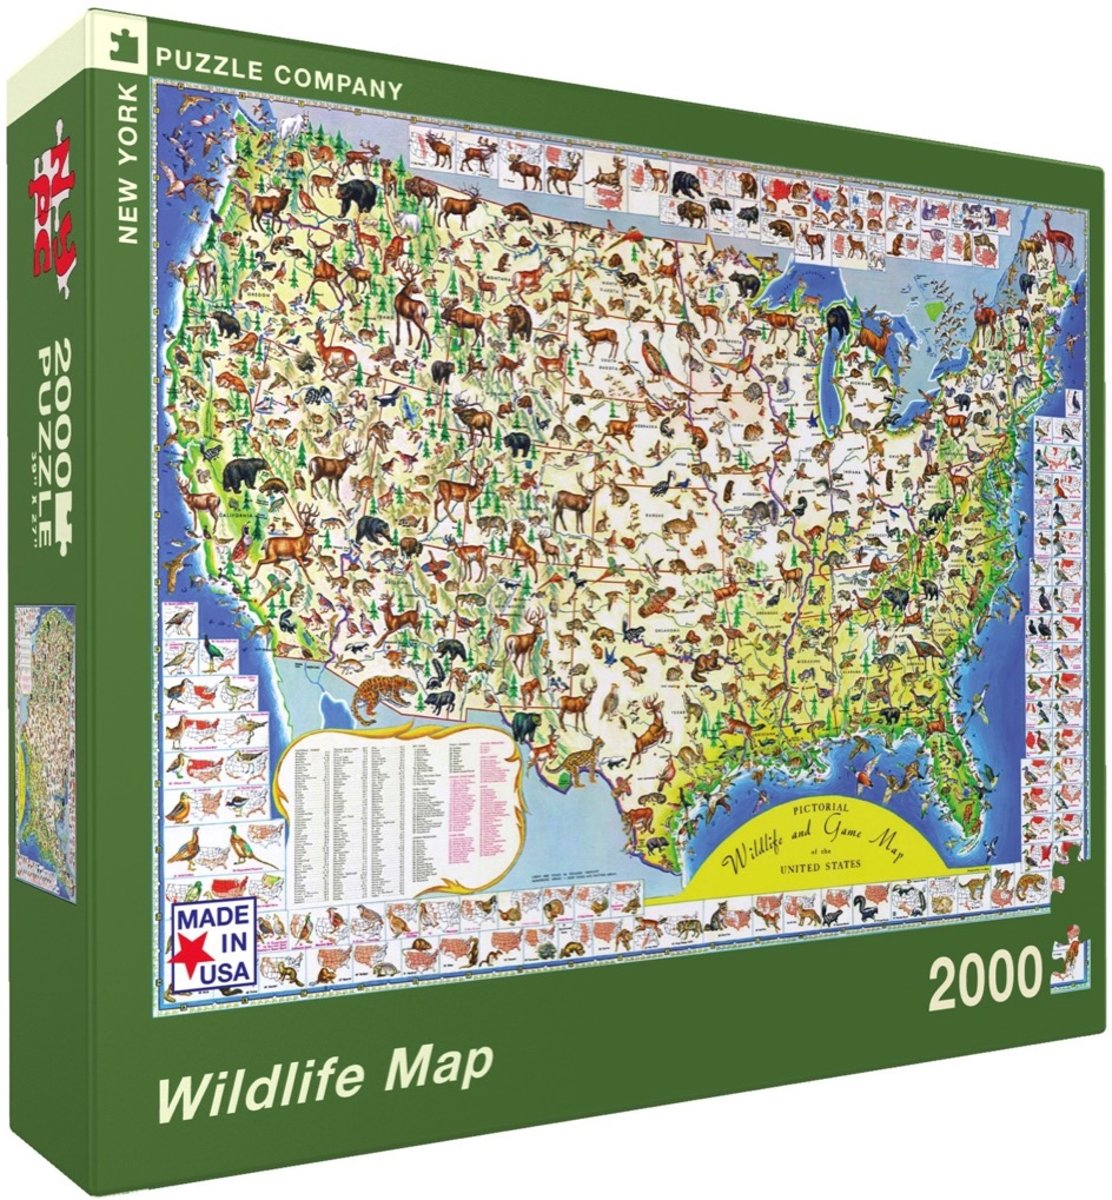 Wildlife Map - NYPC Vintage Images Collectie Puzzel 2000 Stukjes